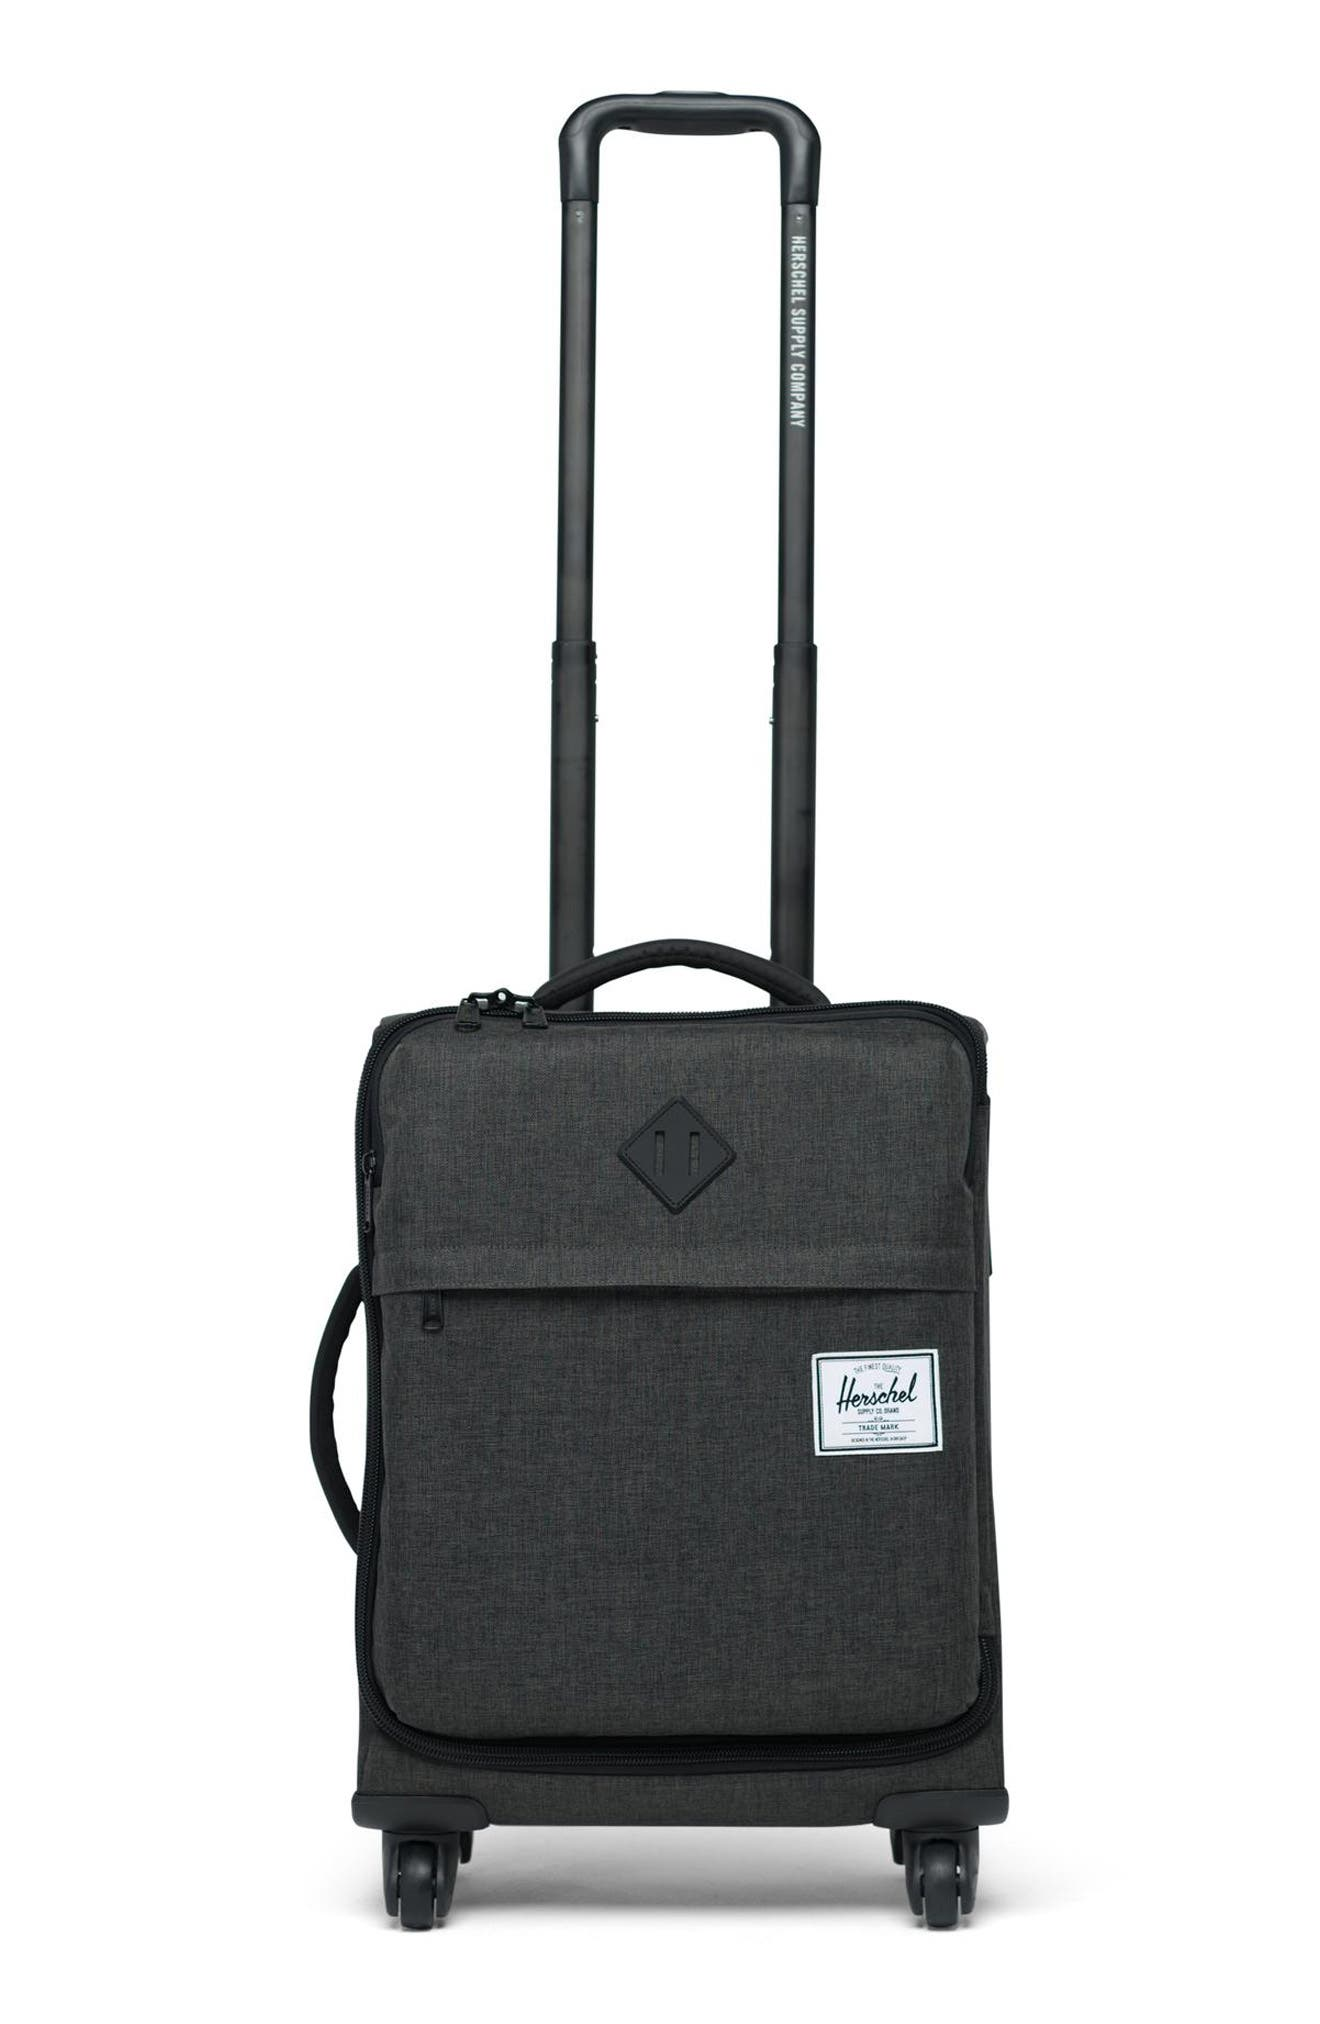 b3d80bb224 Luggage Herschel Backpacks